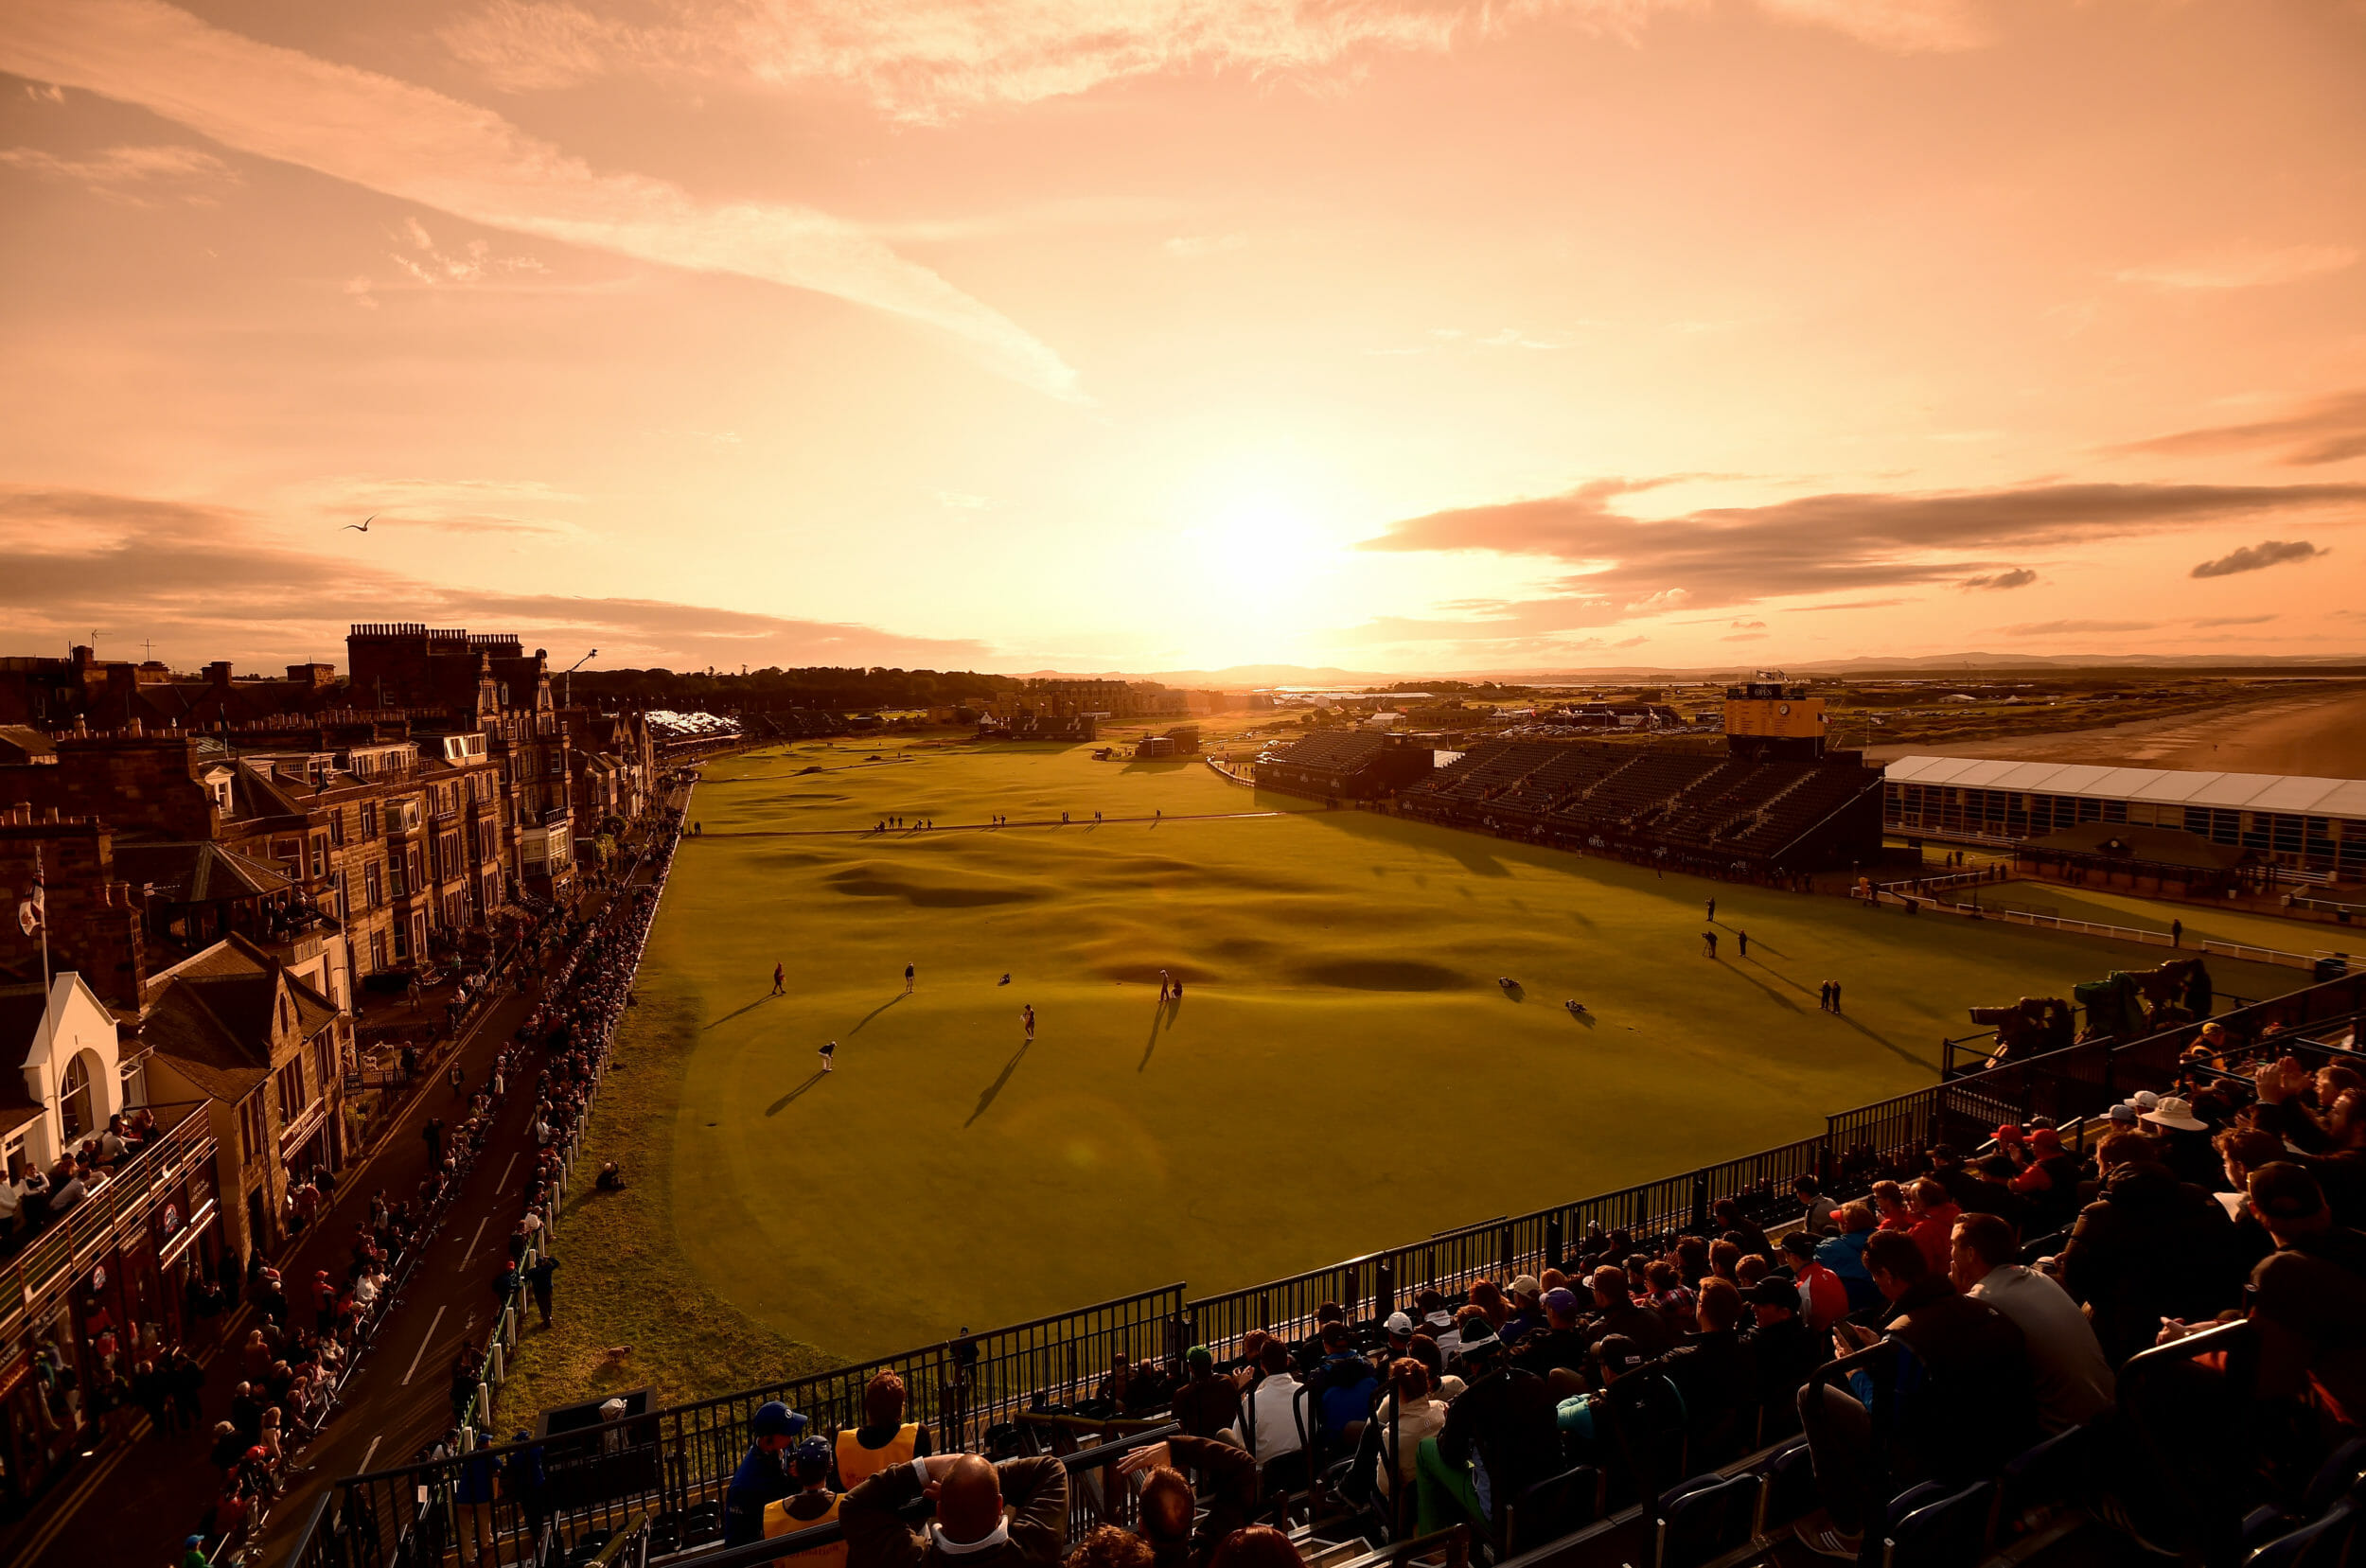 Dawn sun rises over the Old Course at St Andrews Links in Scotland